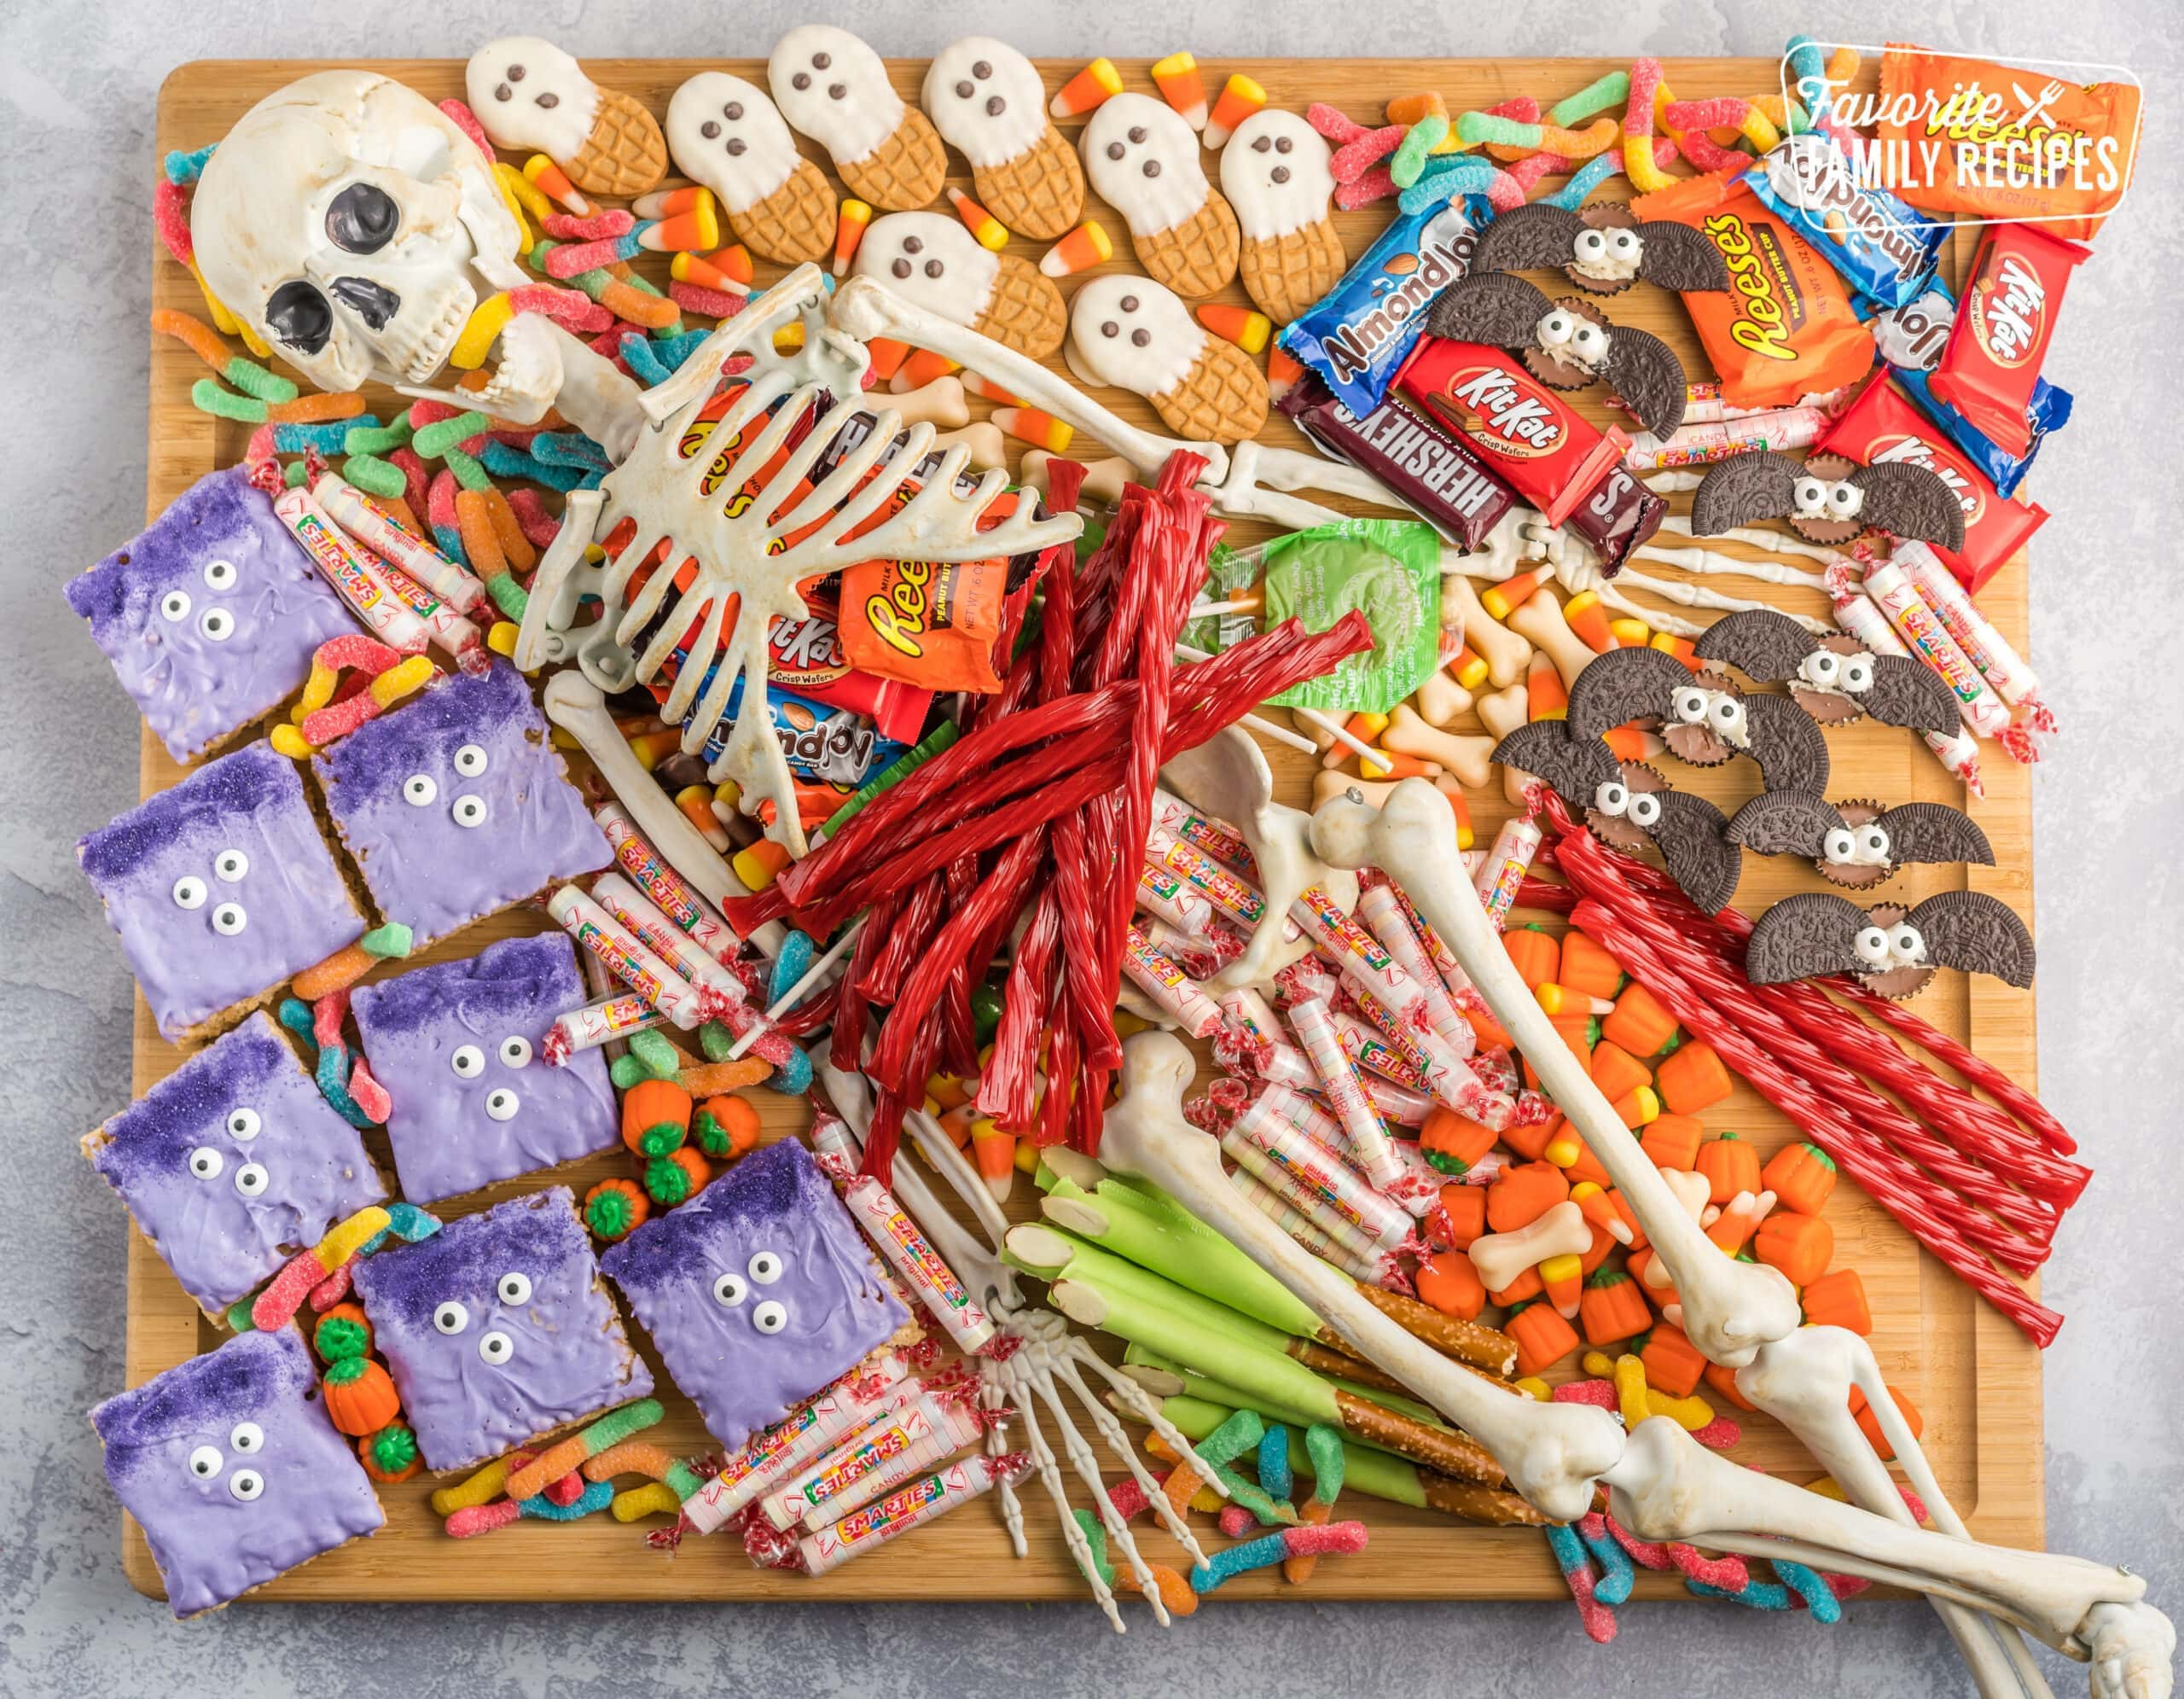 A halloween charcuterie board covered in candy and spooky treats with a skeleton in the middle.